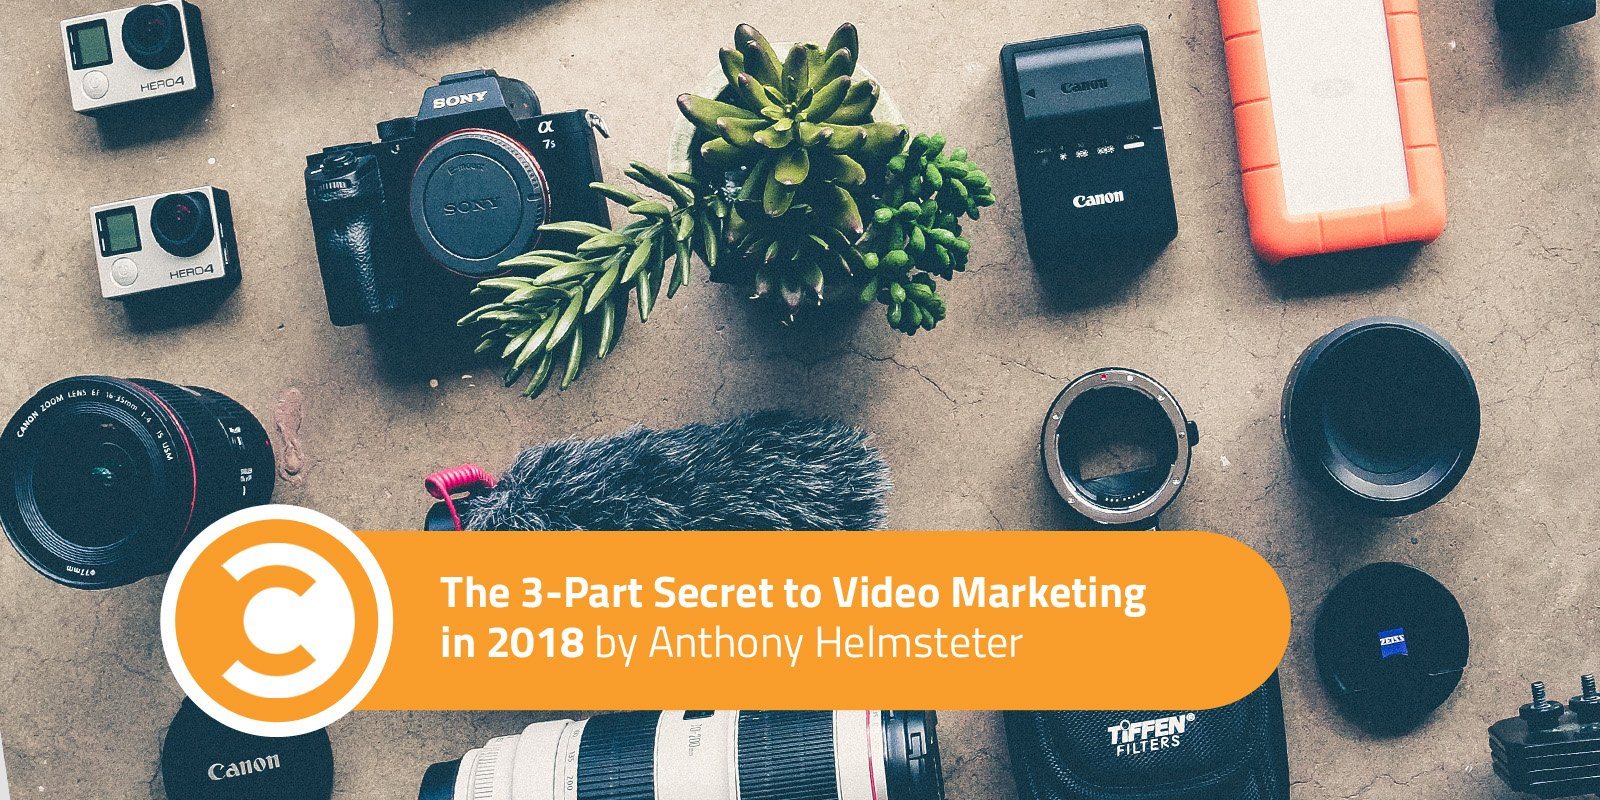 The 3-Part Secret to Video Marketing in 2018